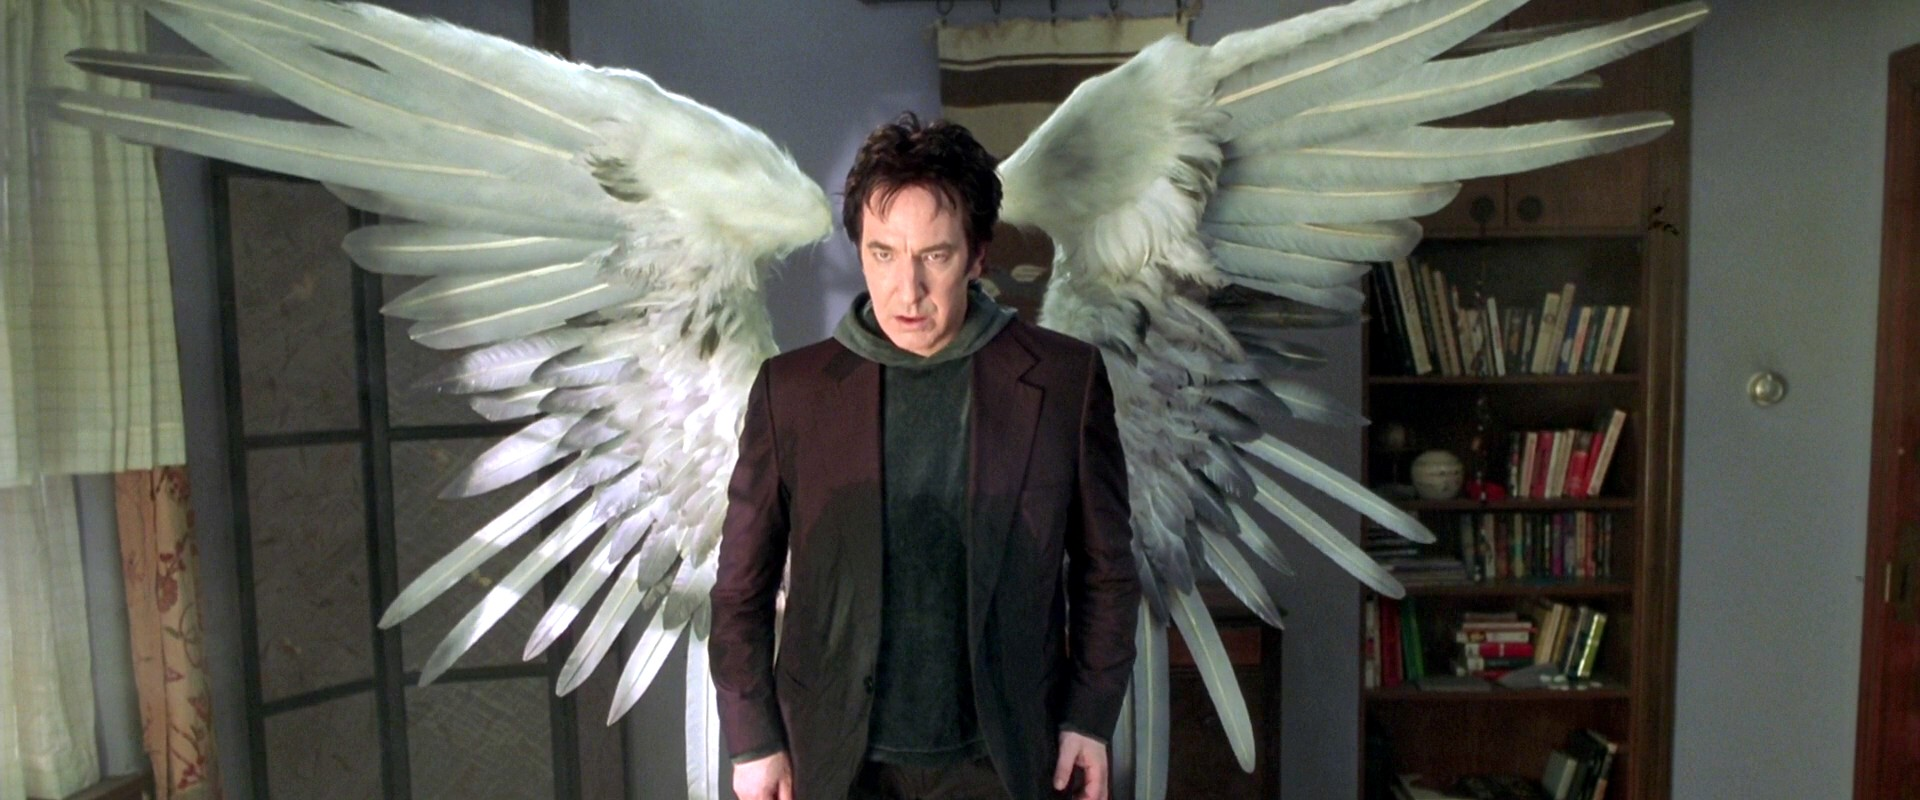 Alan Rickman in Dogma